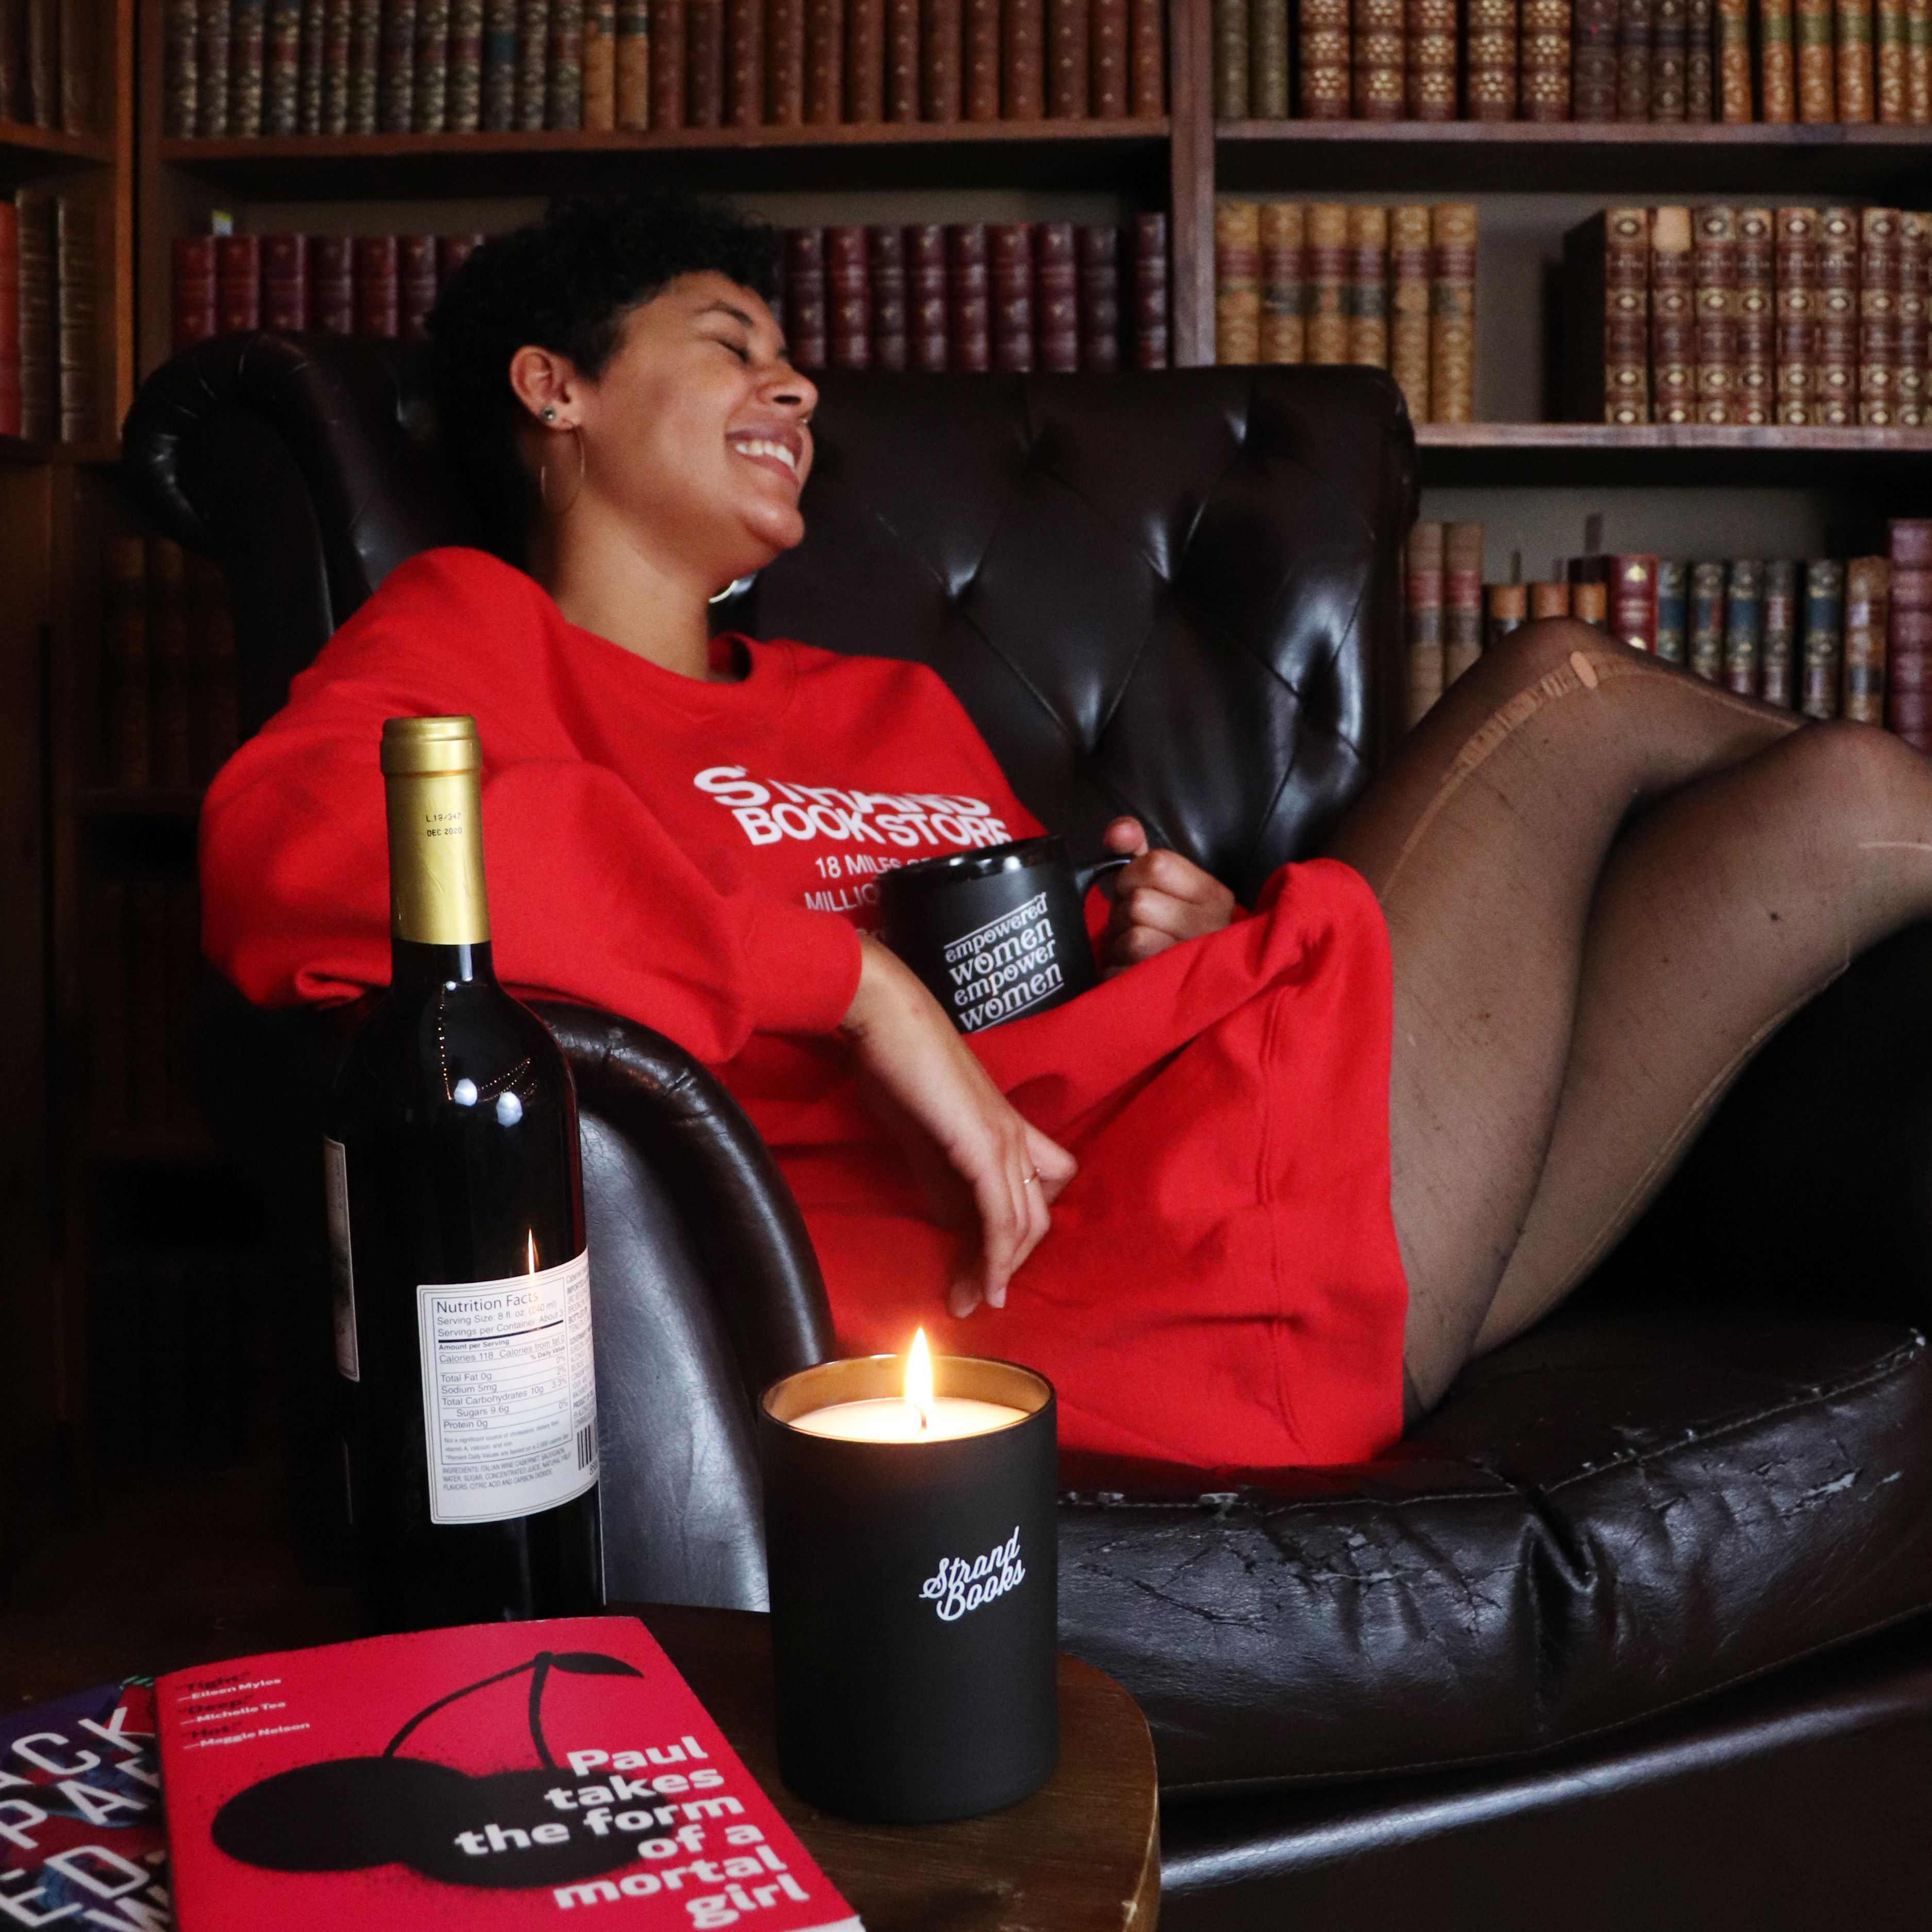 A Perfect Evening With A Good Book Grab Our Vintage Red Sweatshirt For Your Next Chilly Evening In 2020 Red Sweatshirts Private Label Vintage Sweatshirt